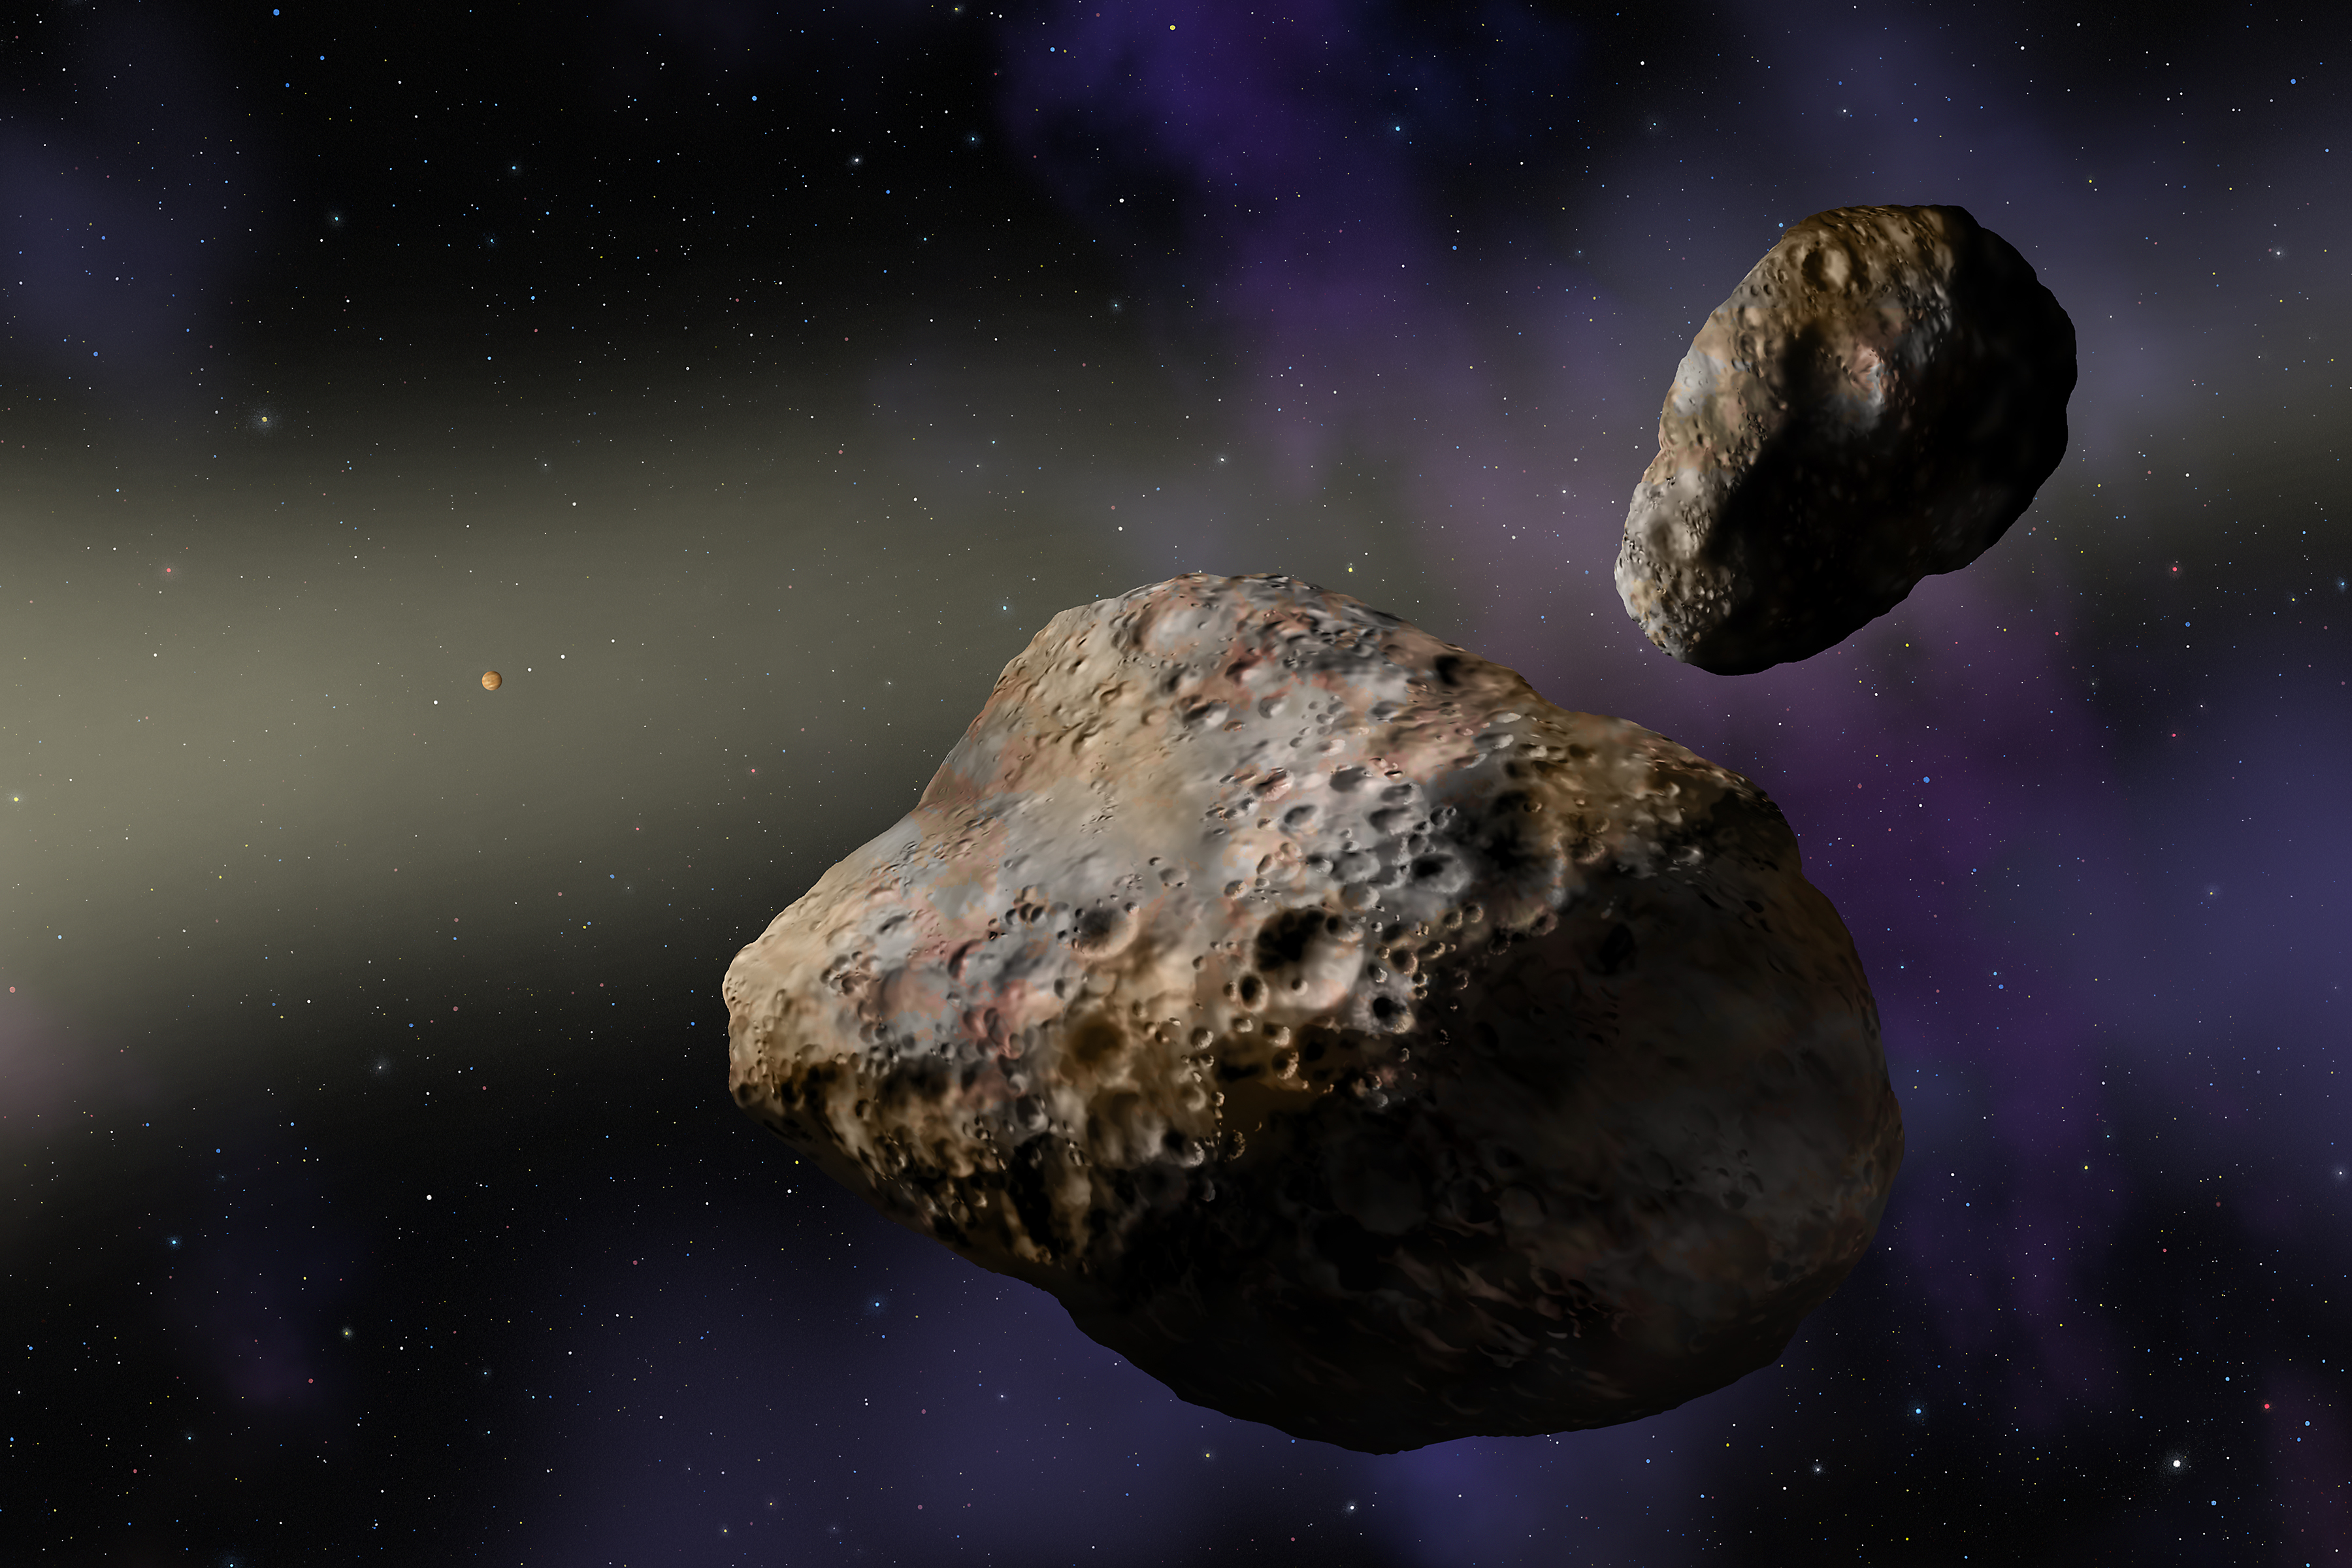 Artist's rendering of the binary asteroids Patroclus (center) and Menoetius. Jupiter and its four Galilean satellites are visible in the distance, while the sun is out of sight to the left. The dirty snowballs probably are fugitives from the Kuiper Belt now hanging out in Jupiter's orbit. (Credit: W. M. Keck Observatory/Lynette Cook)